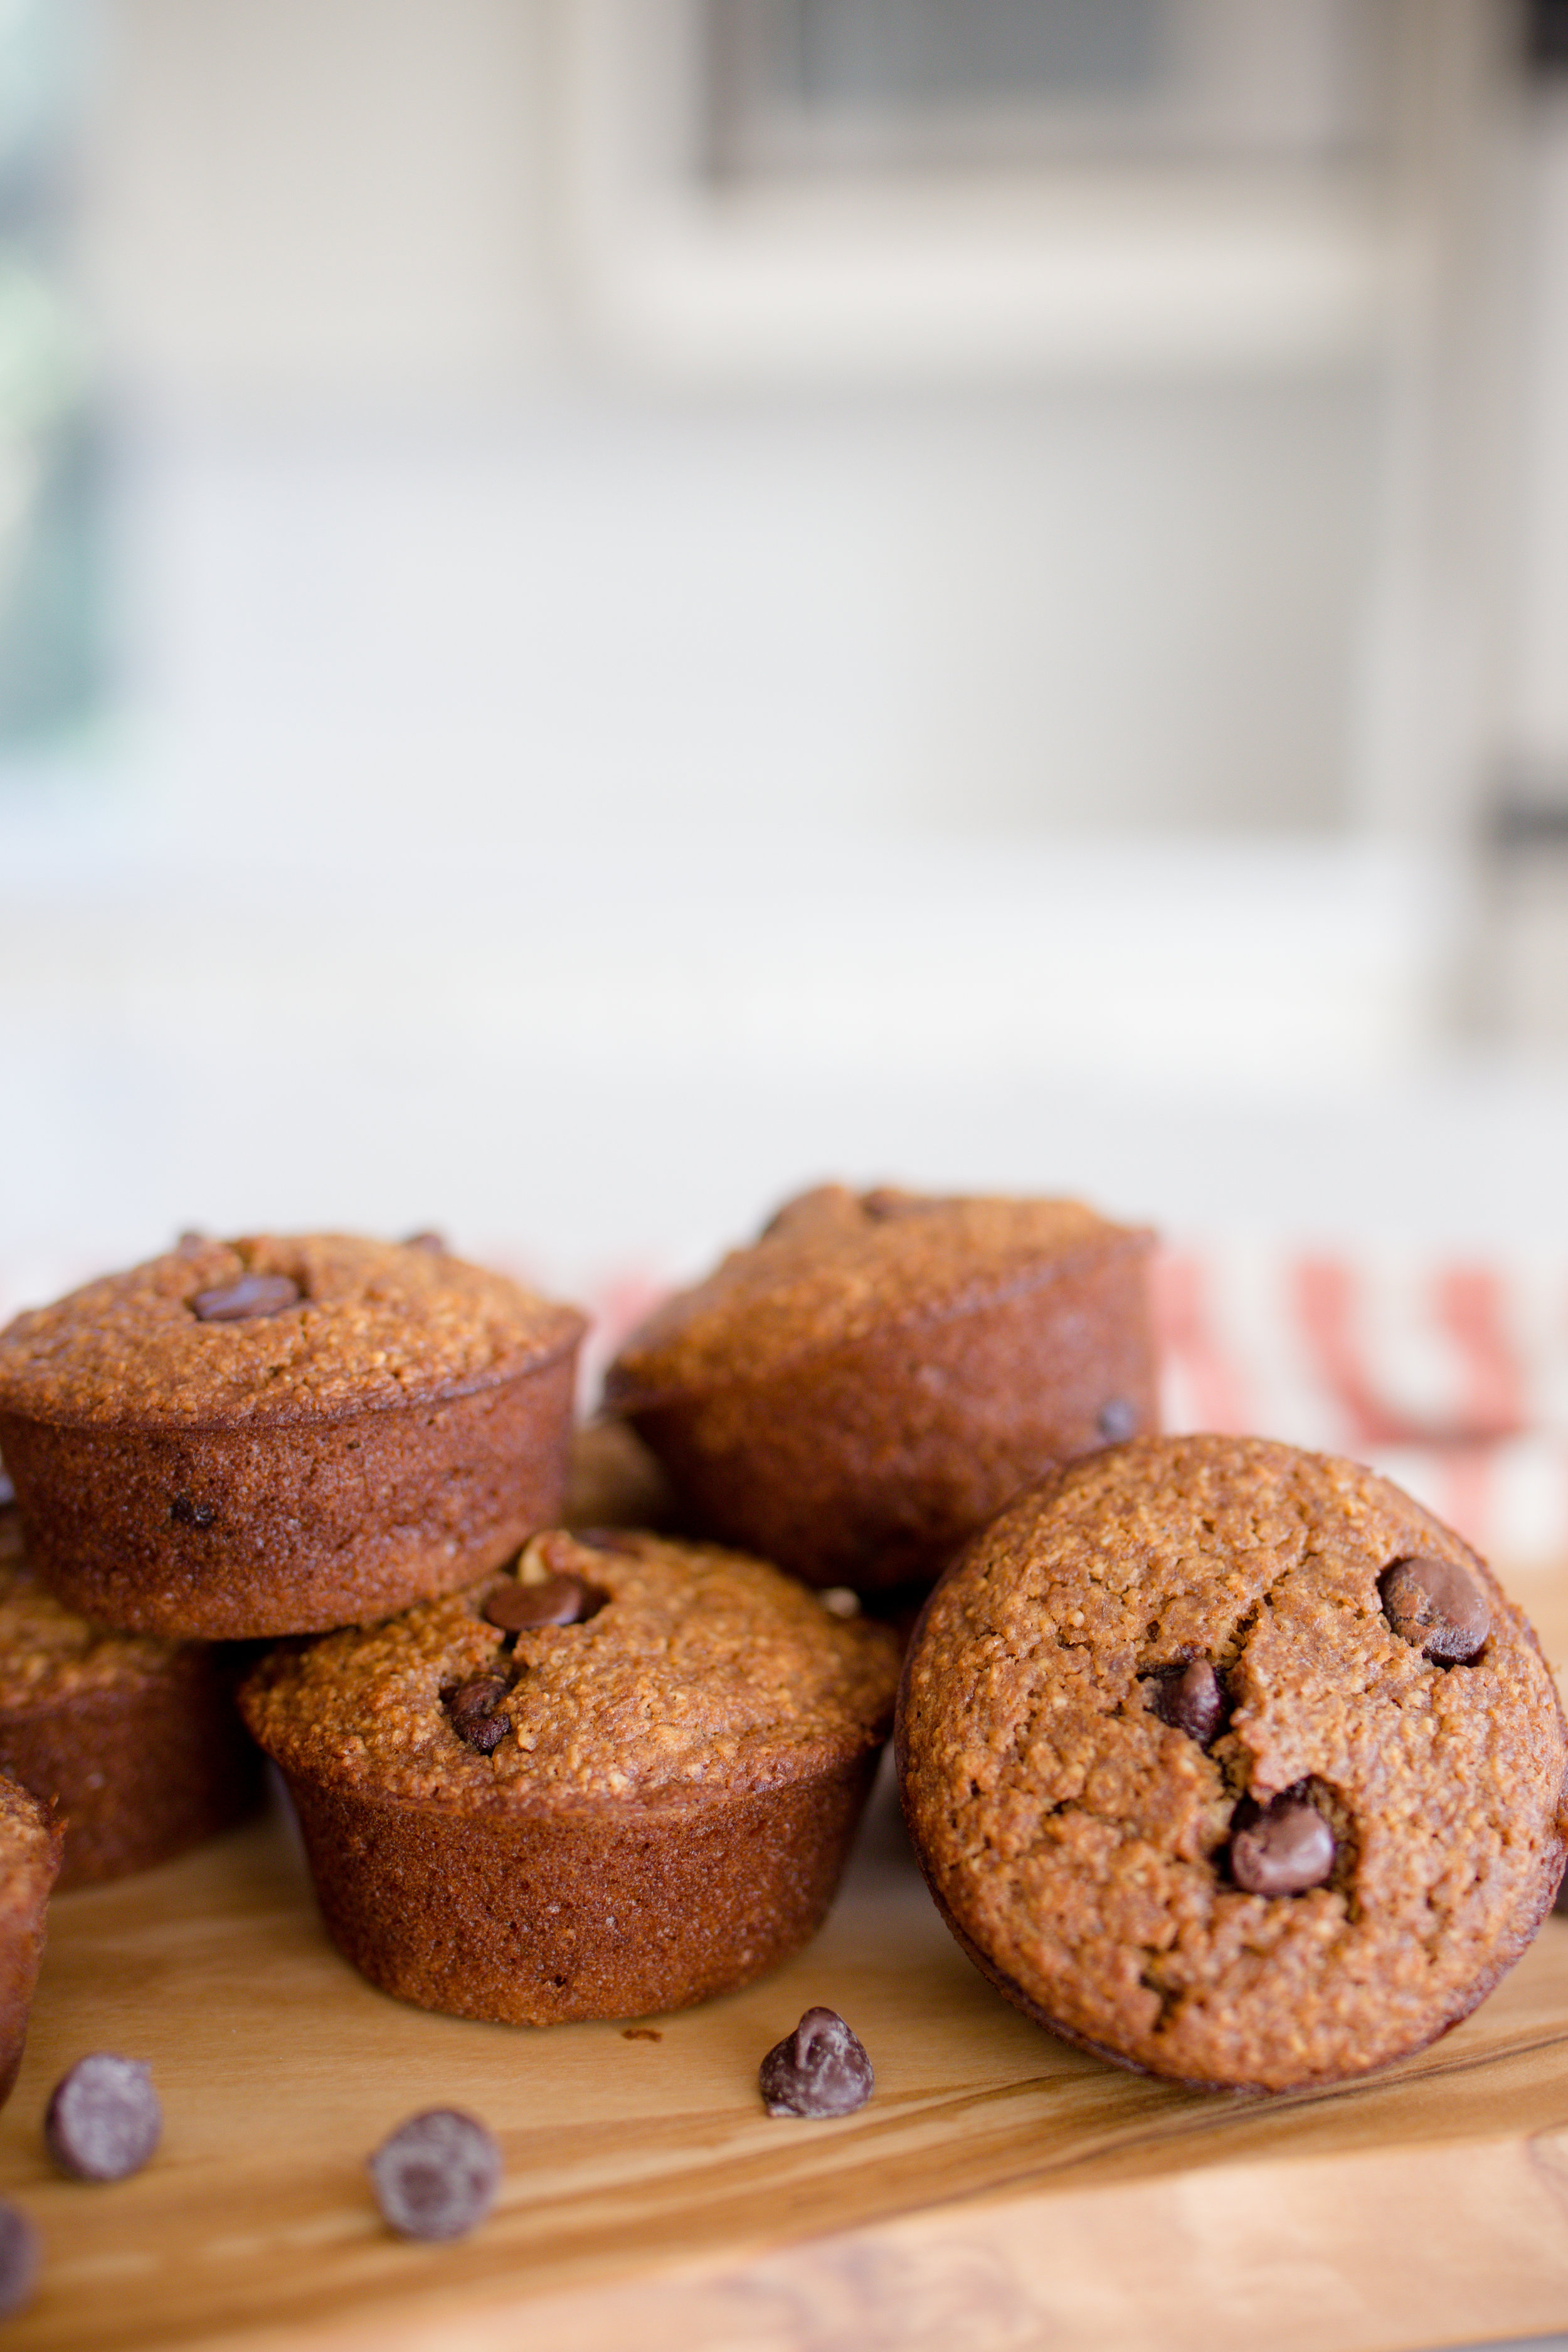 Guilt Free Gluten Free Chocolate Chip Muffins Fresh From Oven on Wood Board